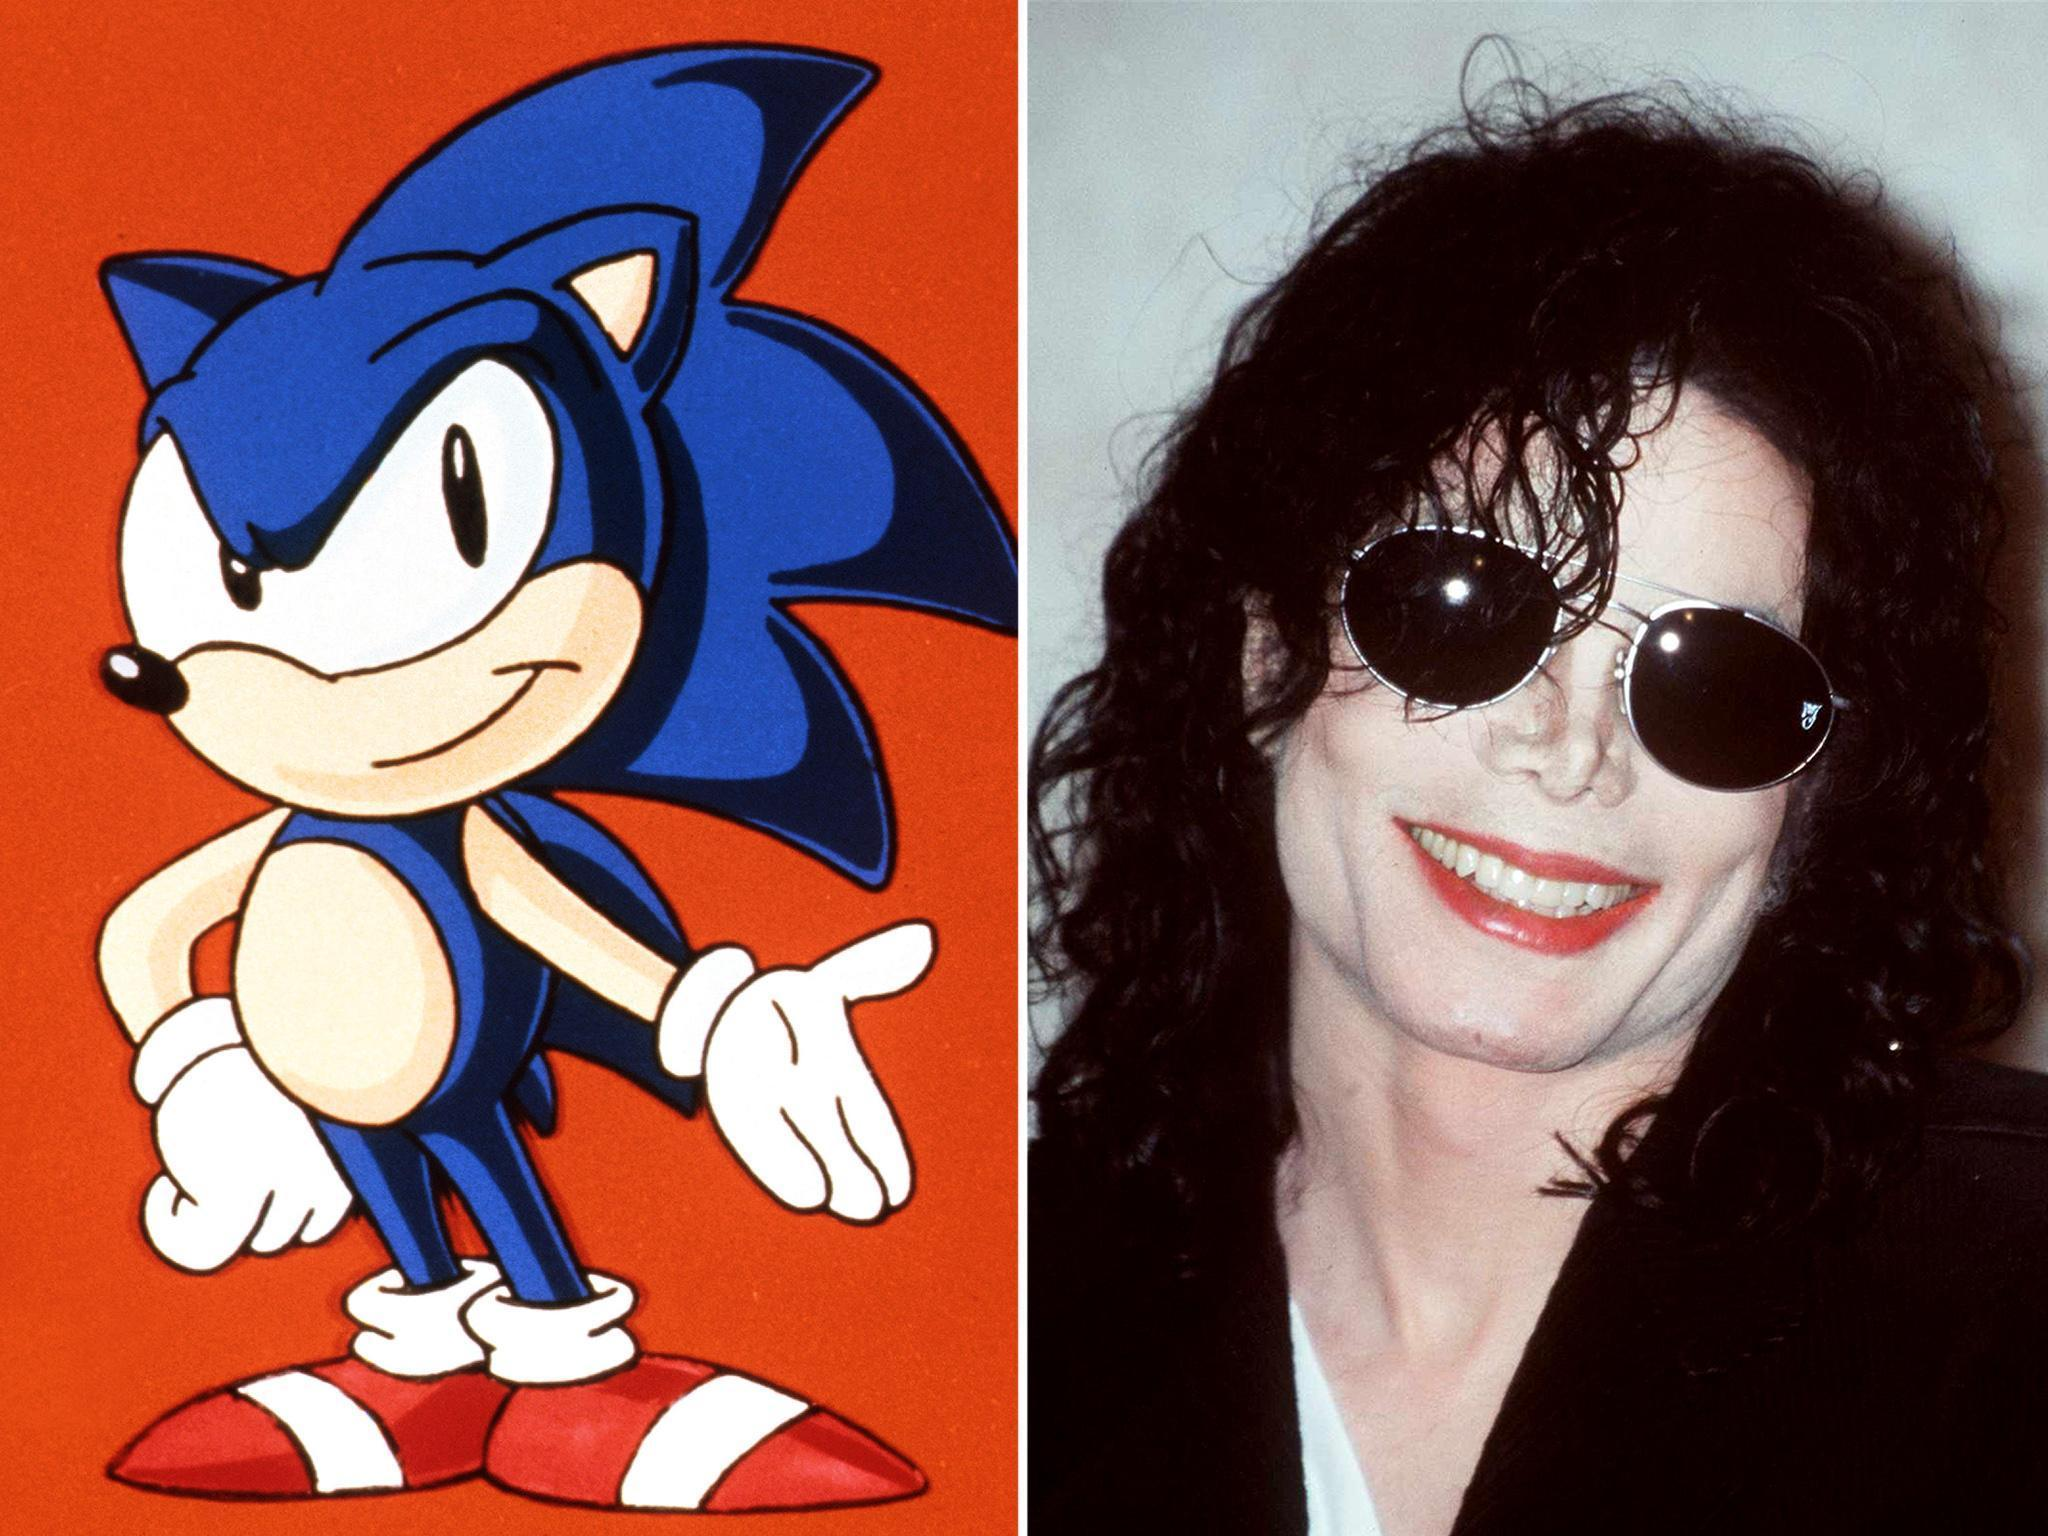 michael jackson Video Game Urban Legends That'll Give You Nightmares